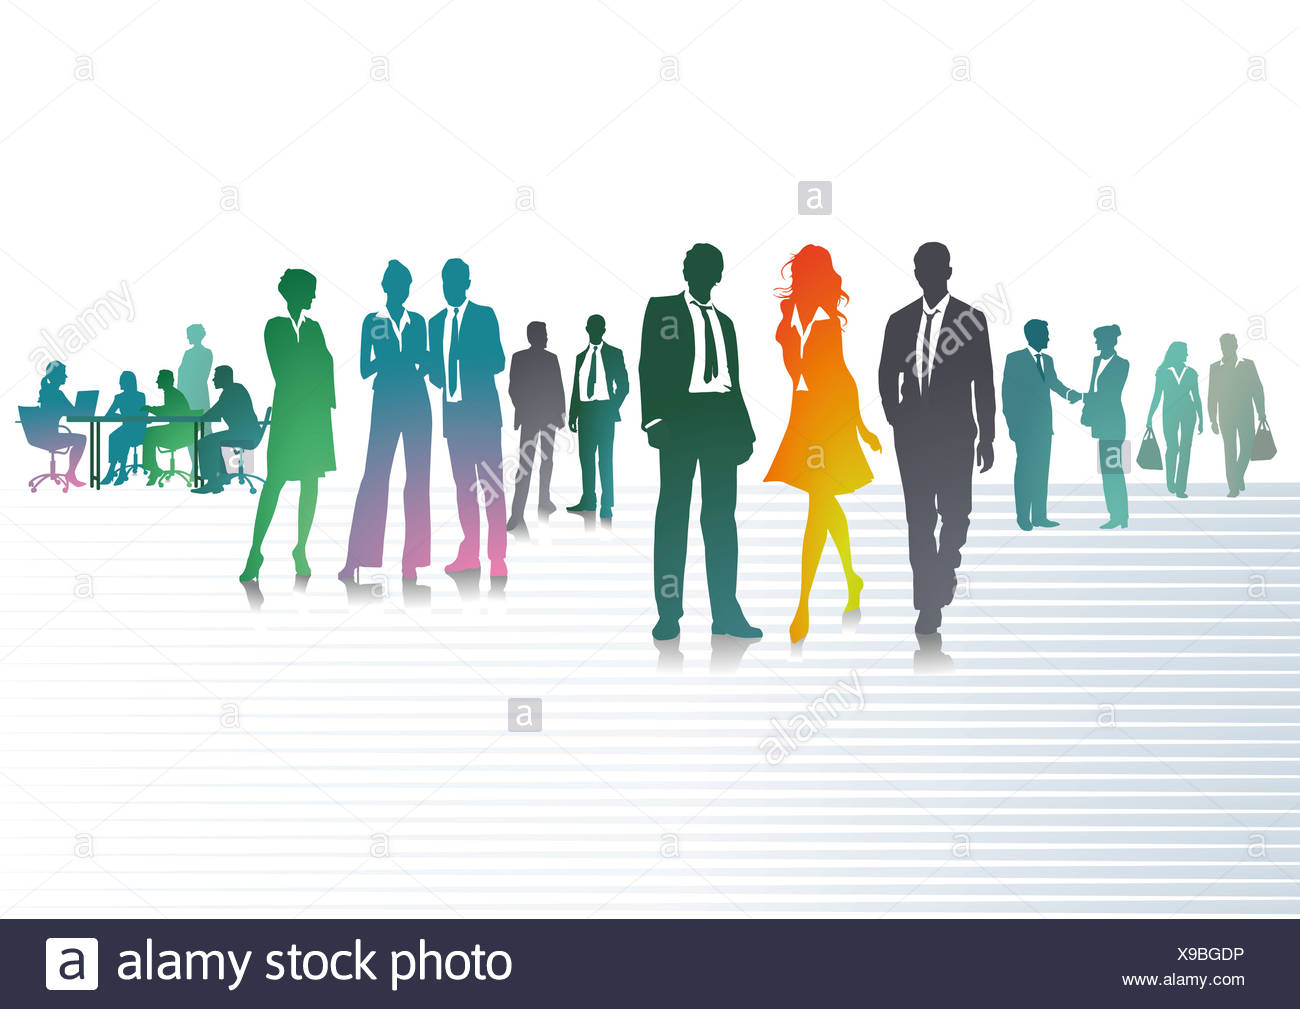 Colorful Businesspeople - Stock Image